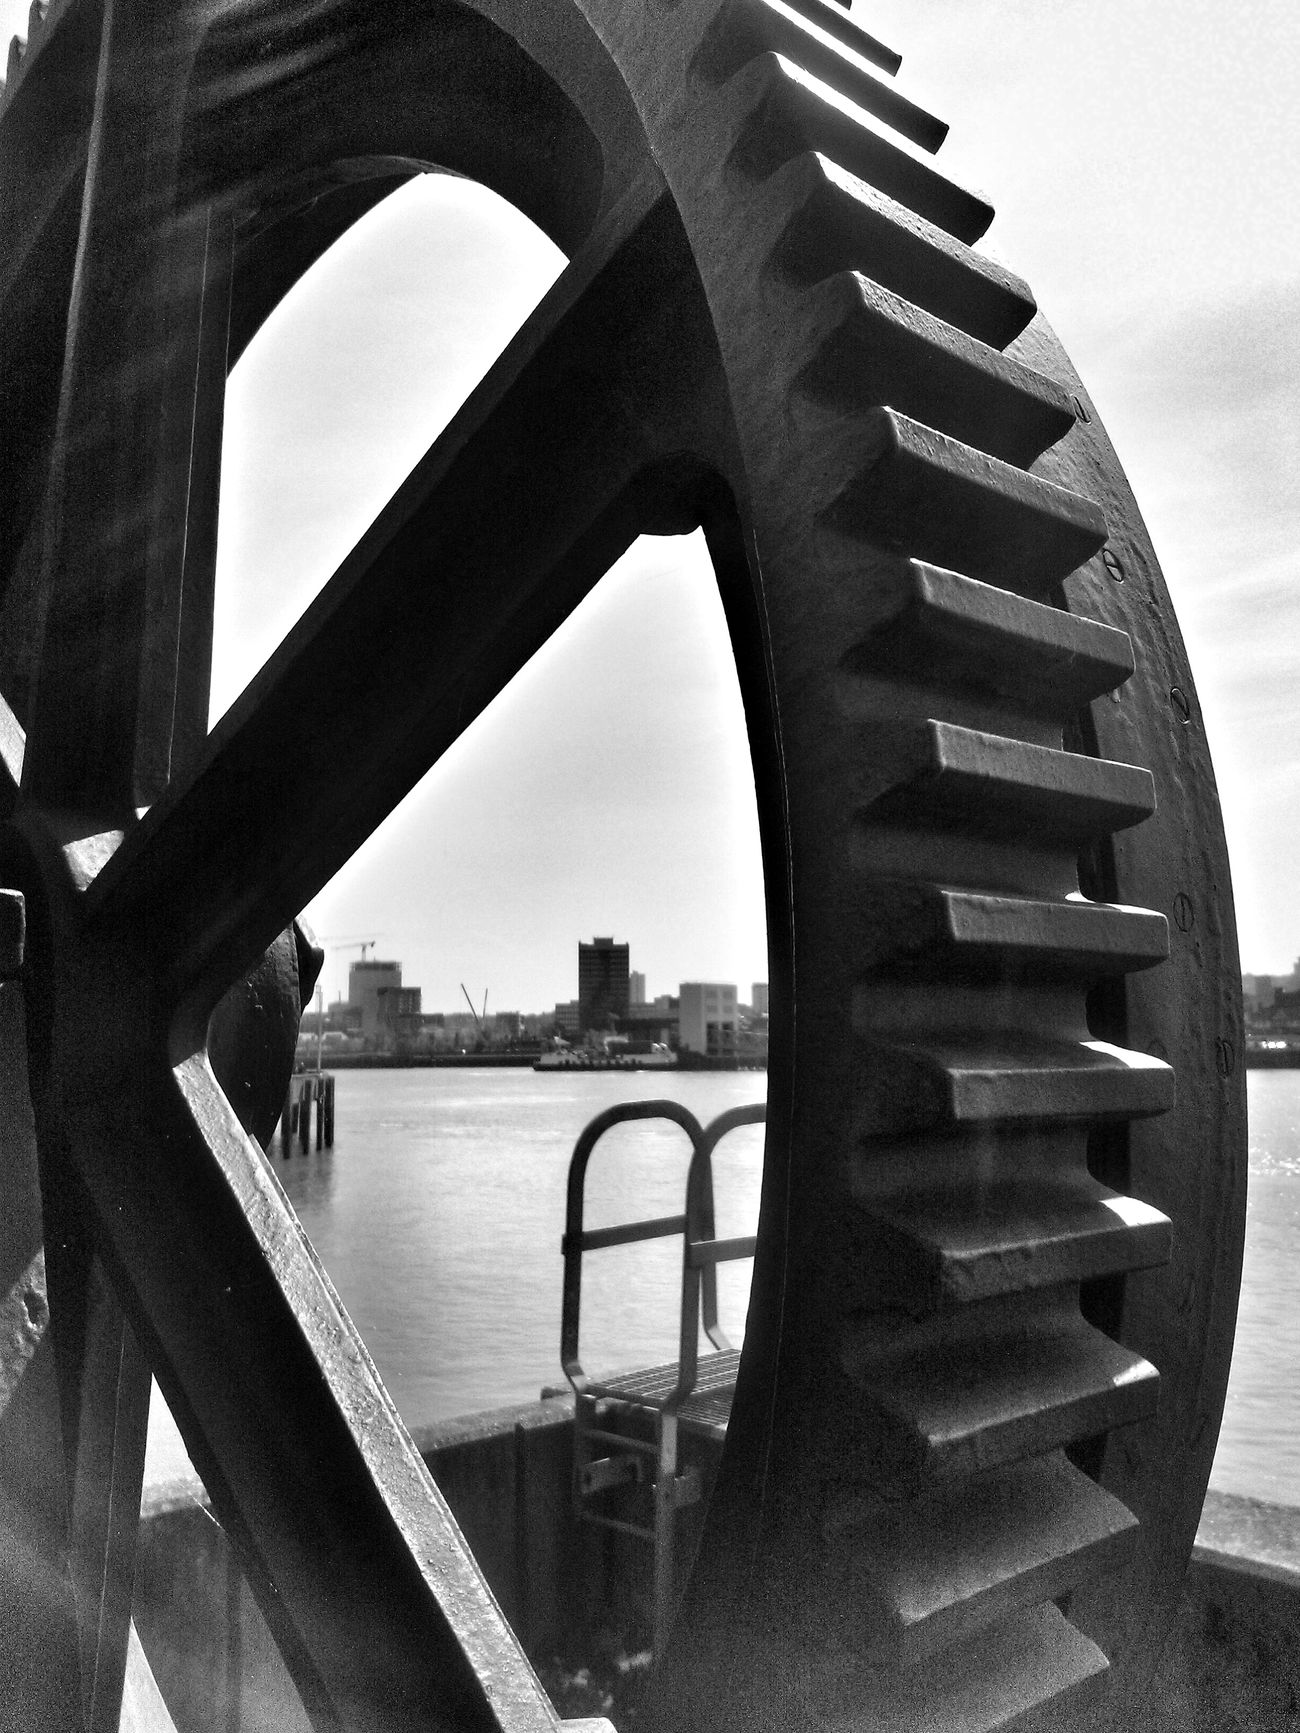 Manmadestructures Inner Workings Blackandwhite Photography Shapes And Lines Cogs Of Industry London